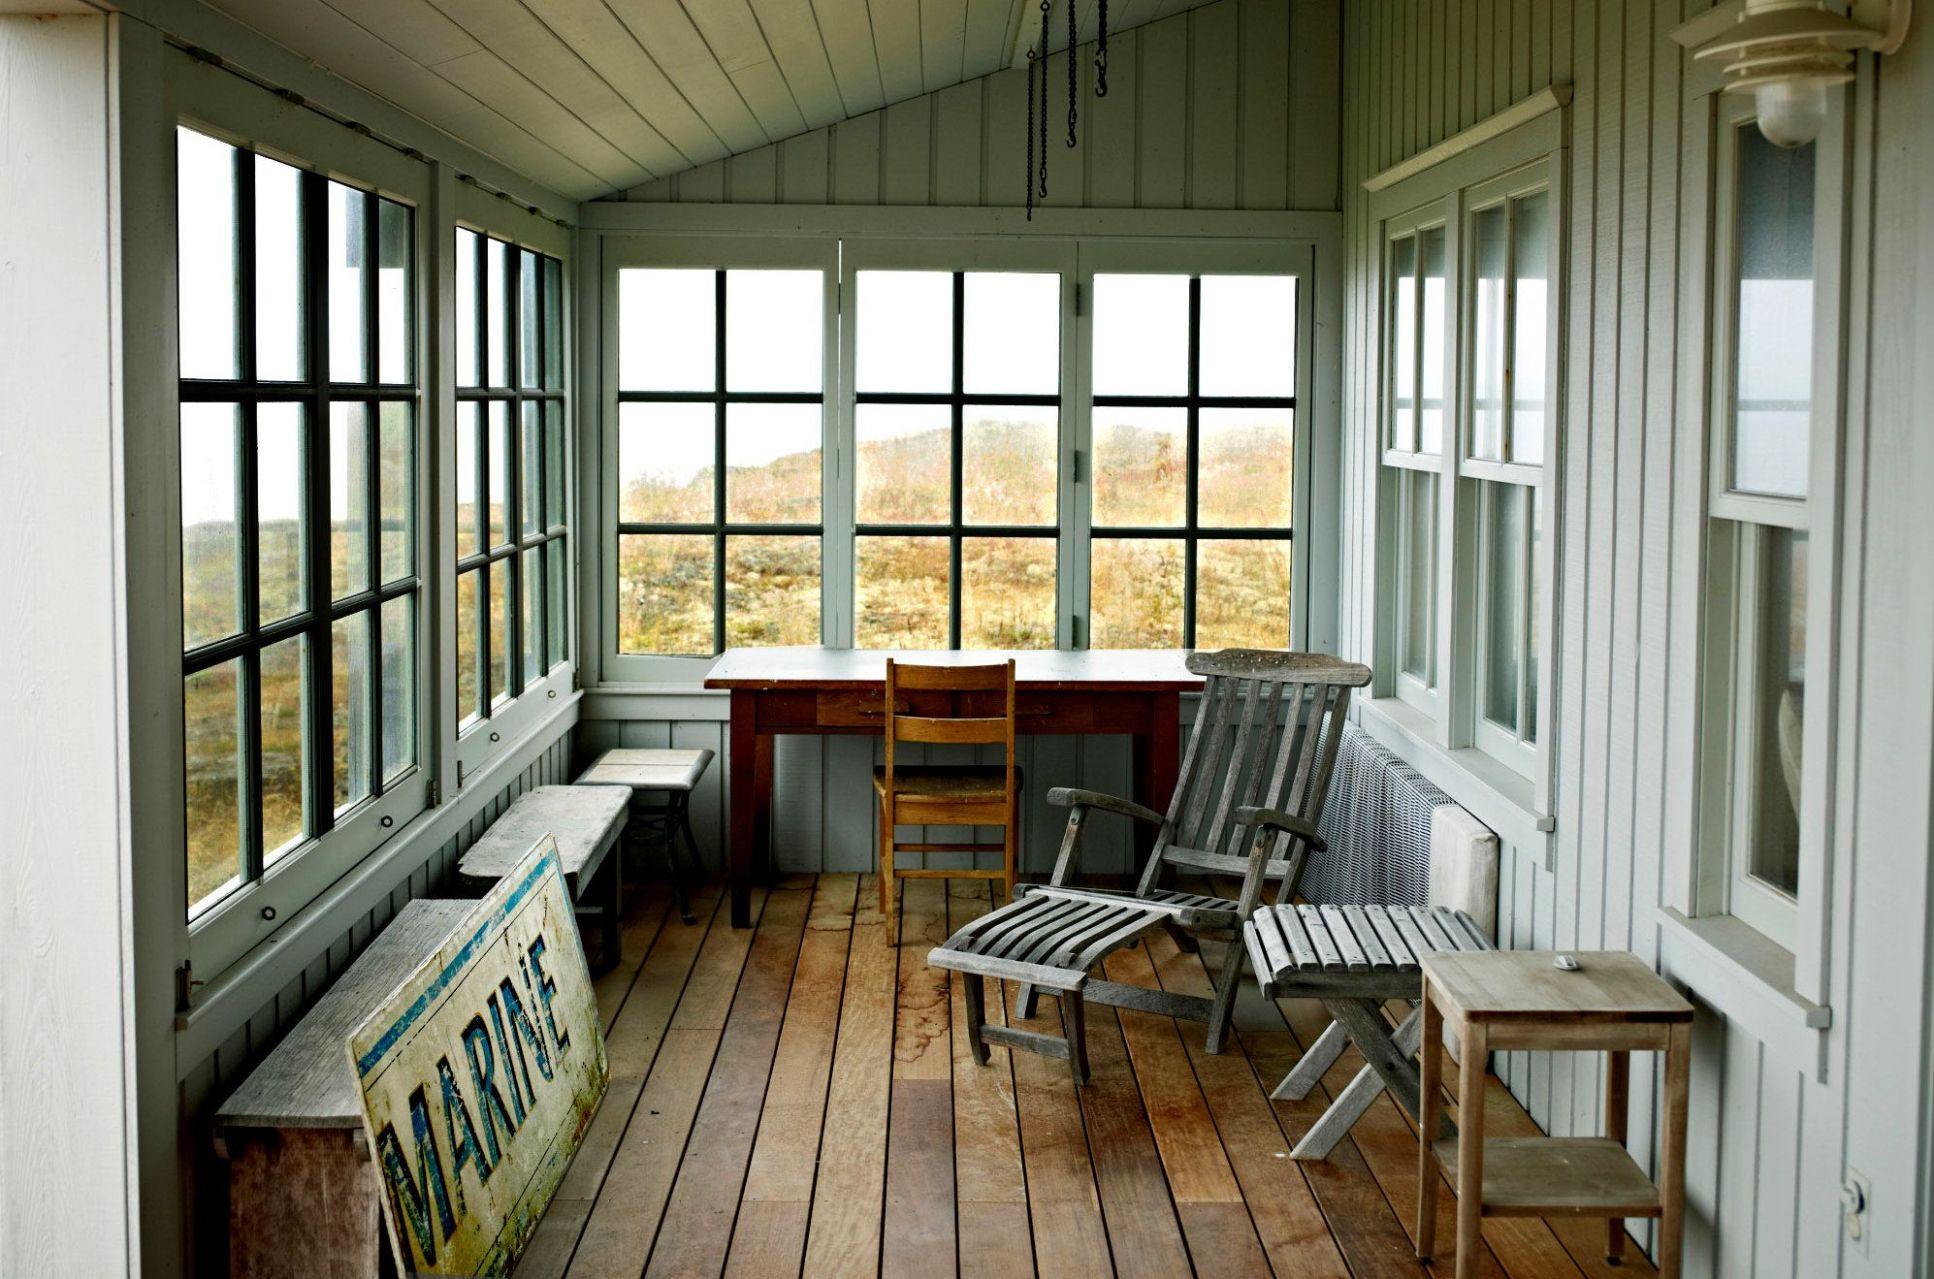 Market Ready: Renovating an Enclosed Porch Before Selling | House ..